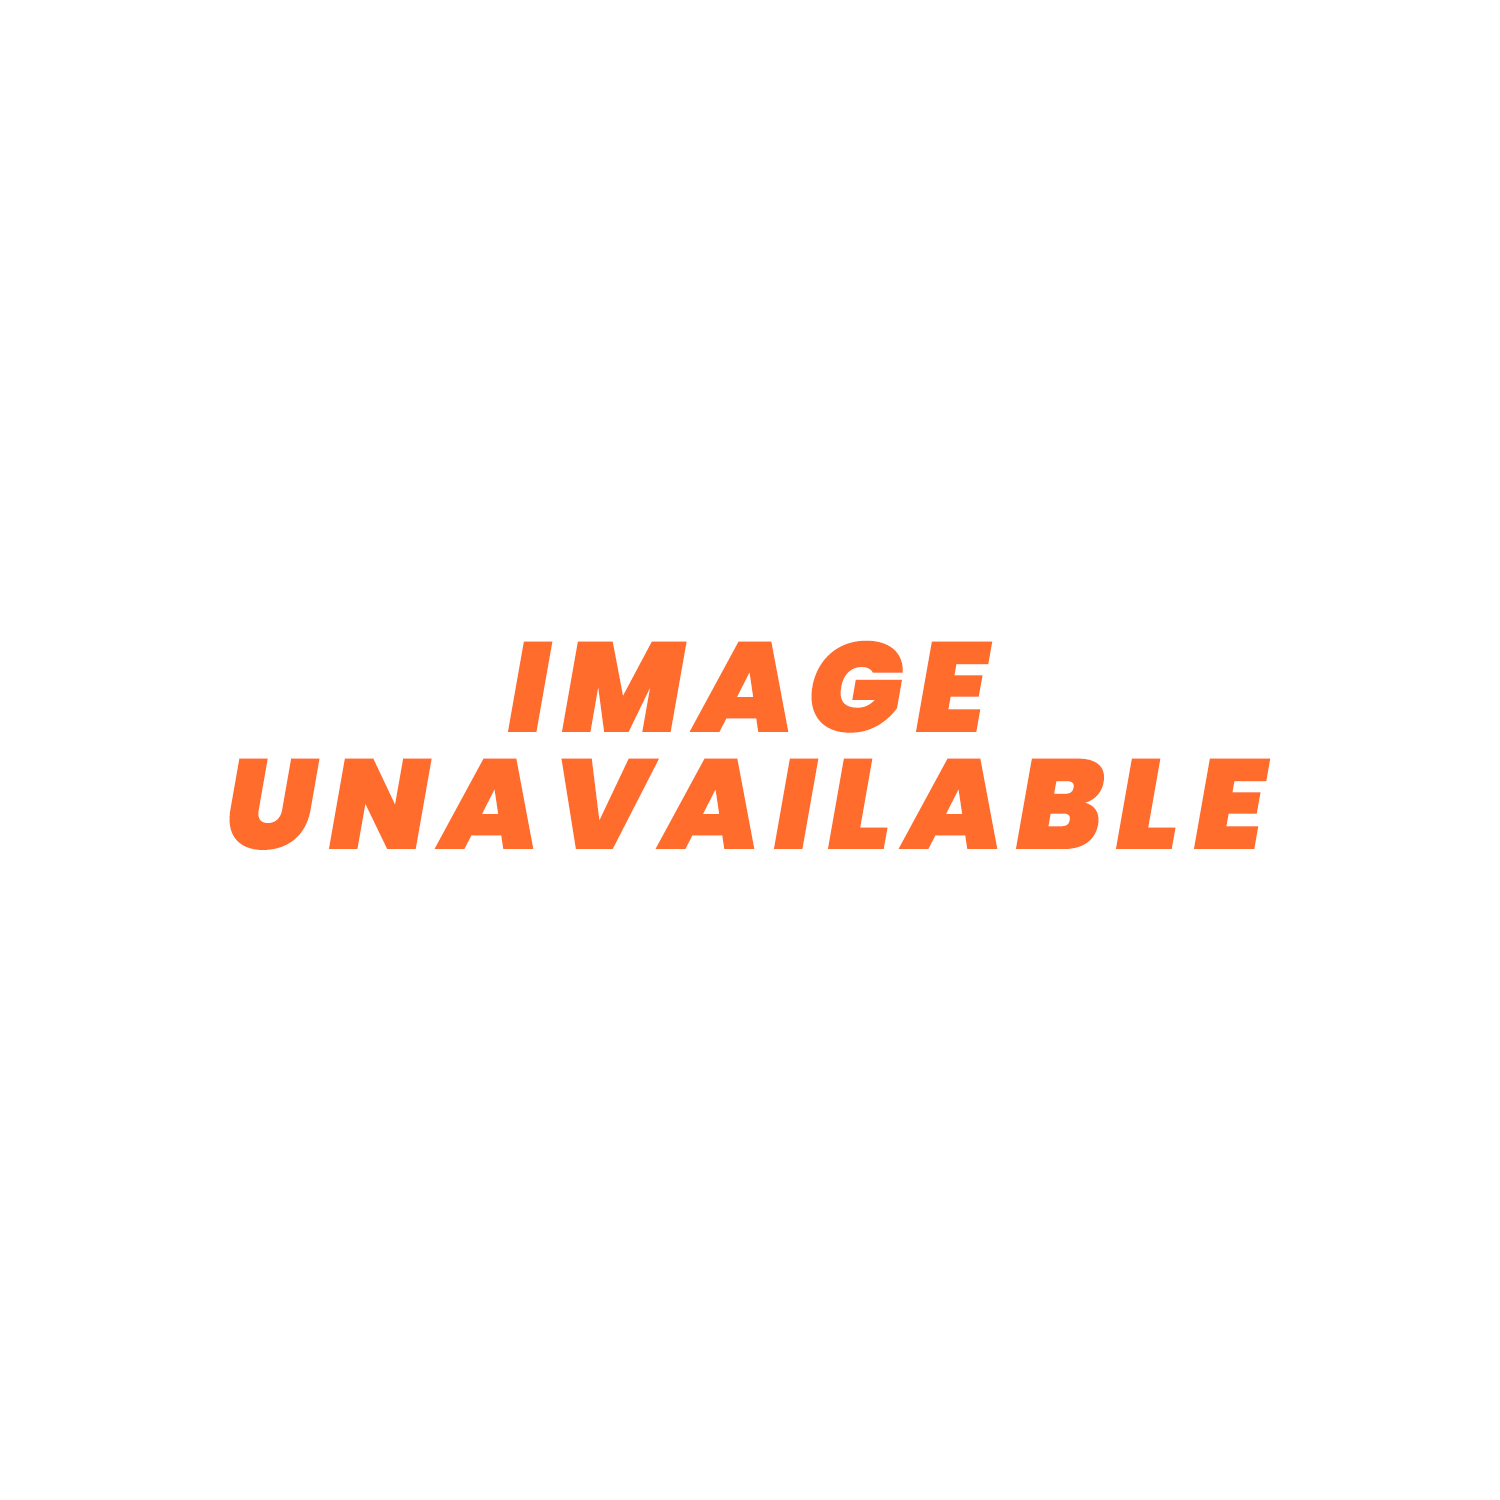 "SPAL Brushless Radiator Fan - 14.0"" (355mm) VA116-ABL505P/N-105A 2389cfm 12v"